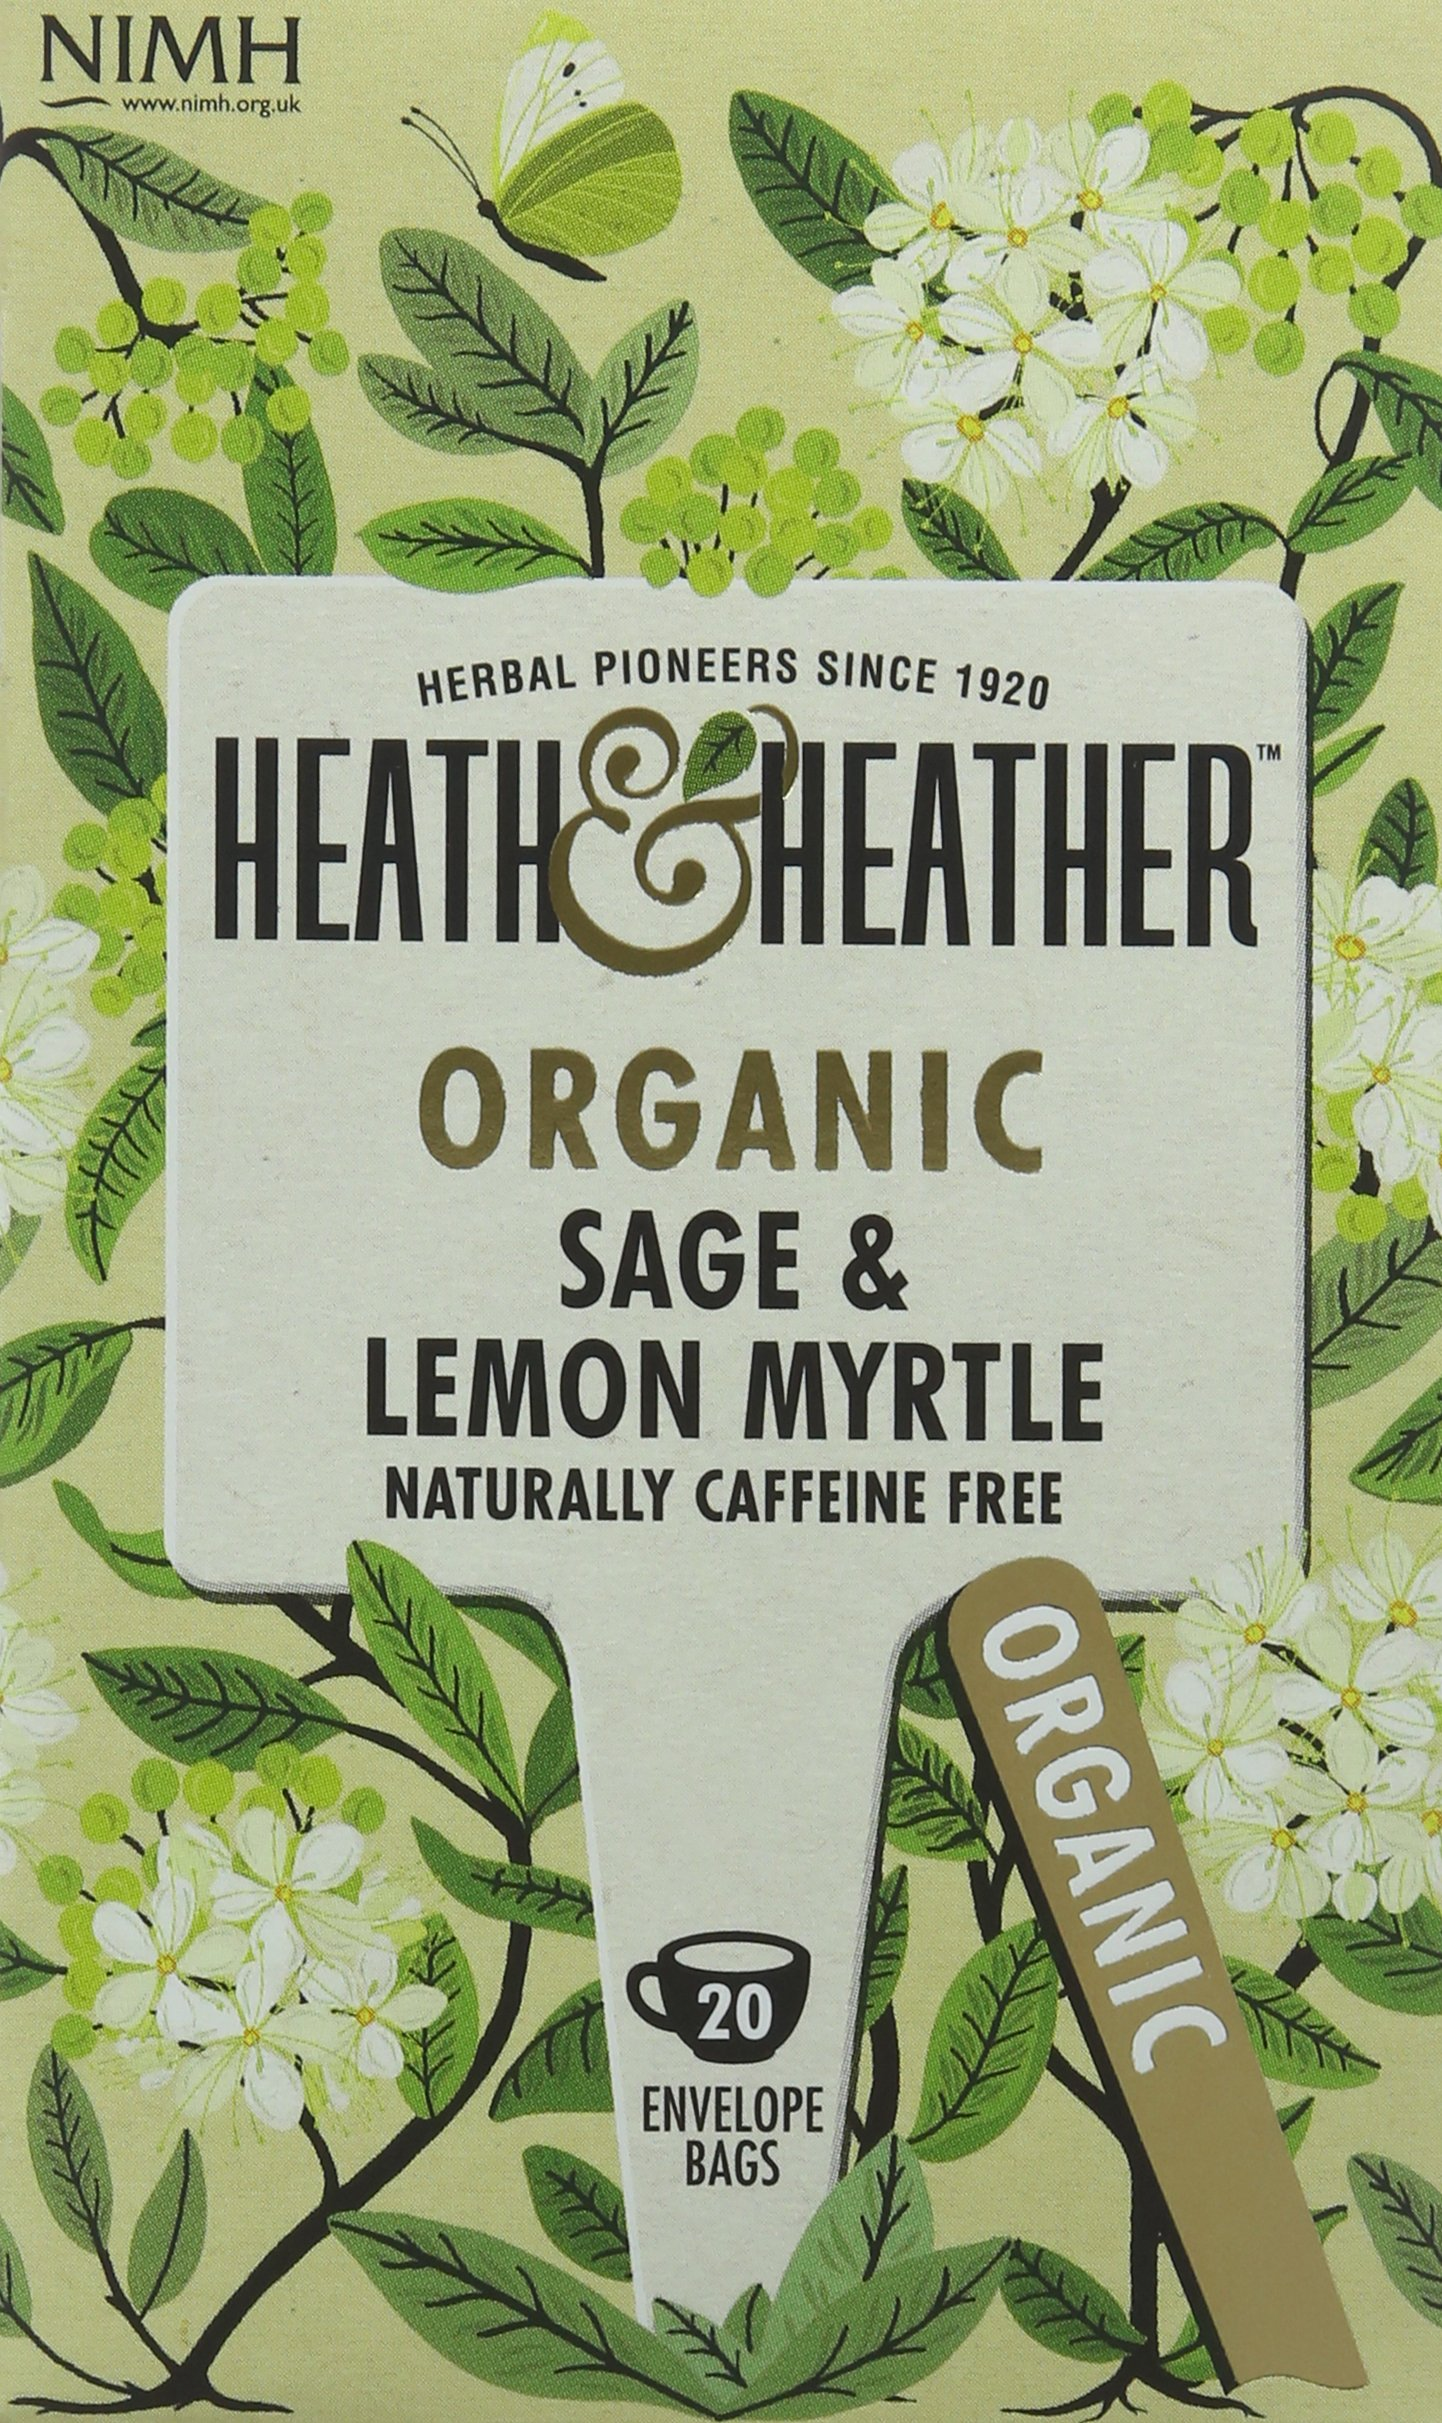 Heath & Heather organic sage tea bundle (soil association) (infusions) (6 packs of 20 bags) (120 bags) (a fruity, vegetal tea with aromas of lemon myrtle, sage) (brews in 3-5 minutes)